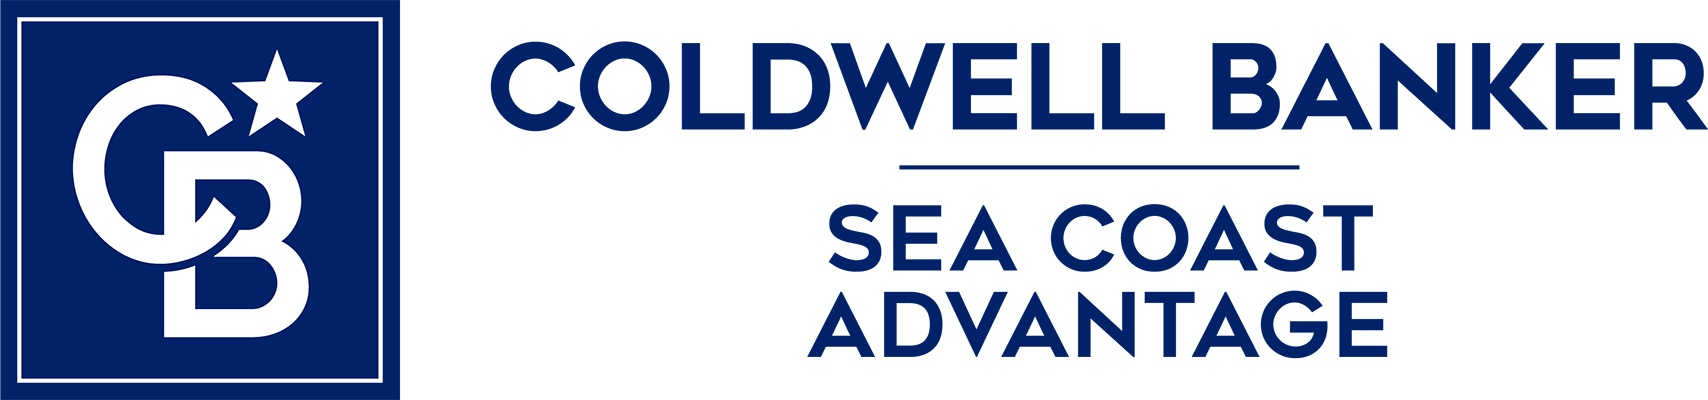 Cynthia Strickland - Coldwell Banker Sea Coast Advantage Realty Logo